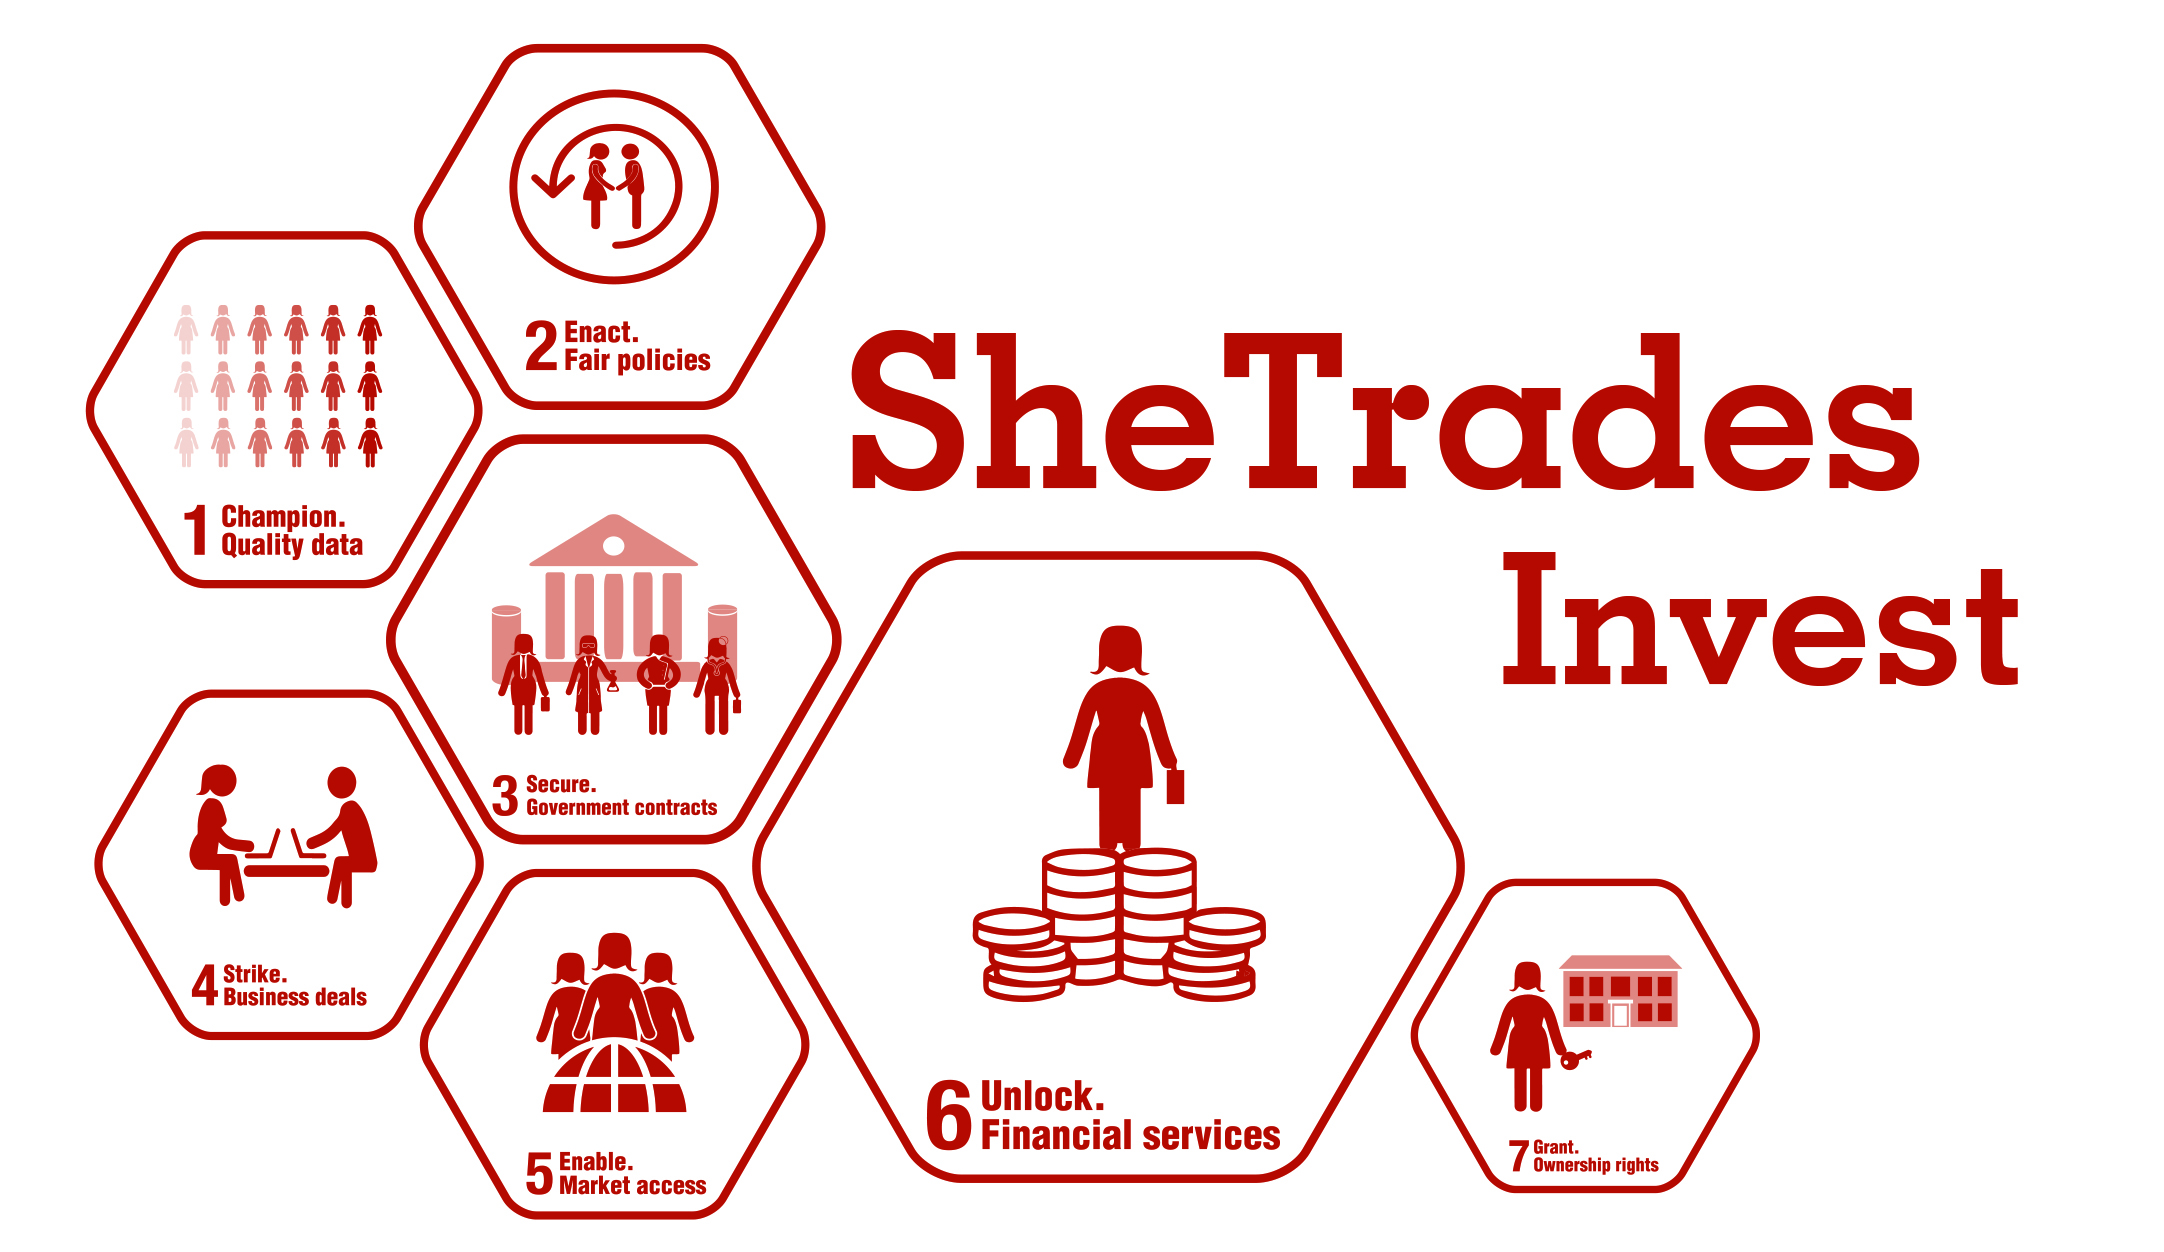 SheTrades Invest